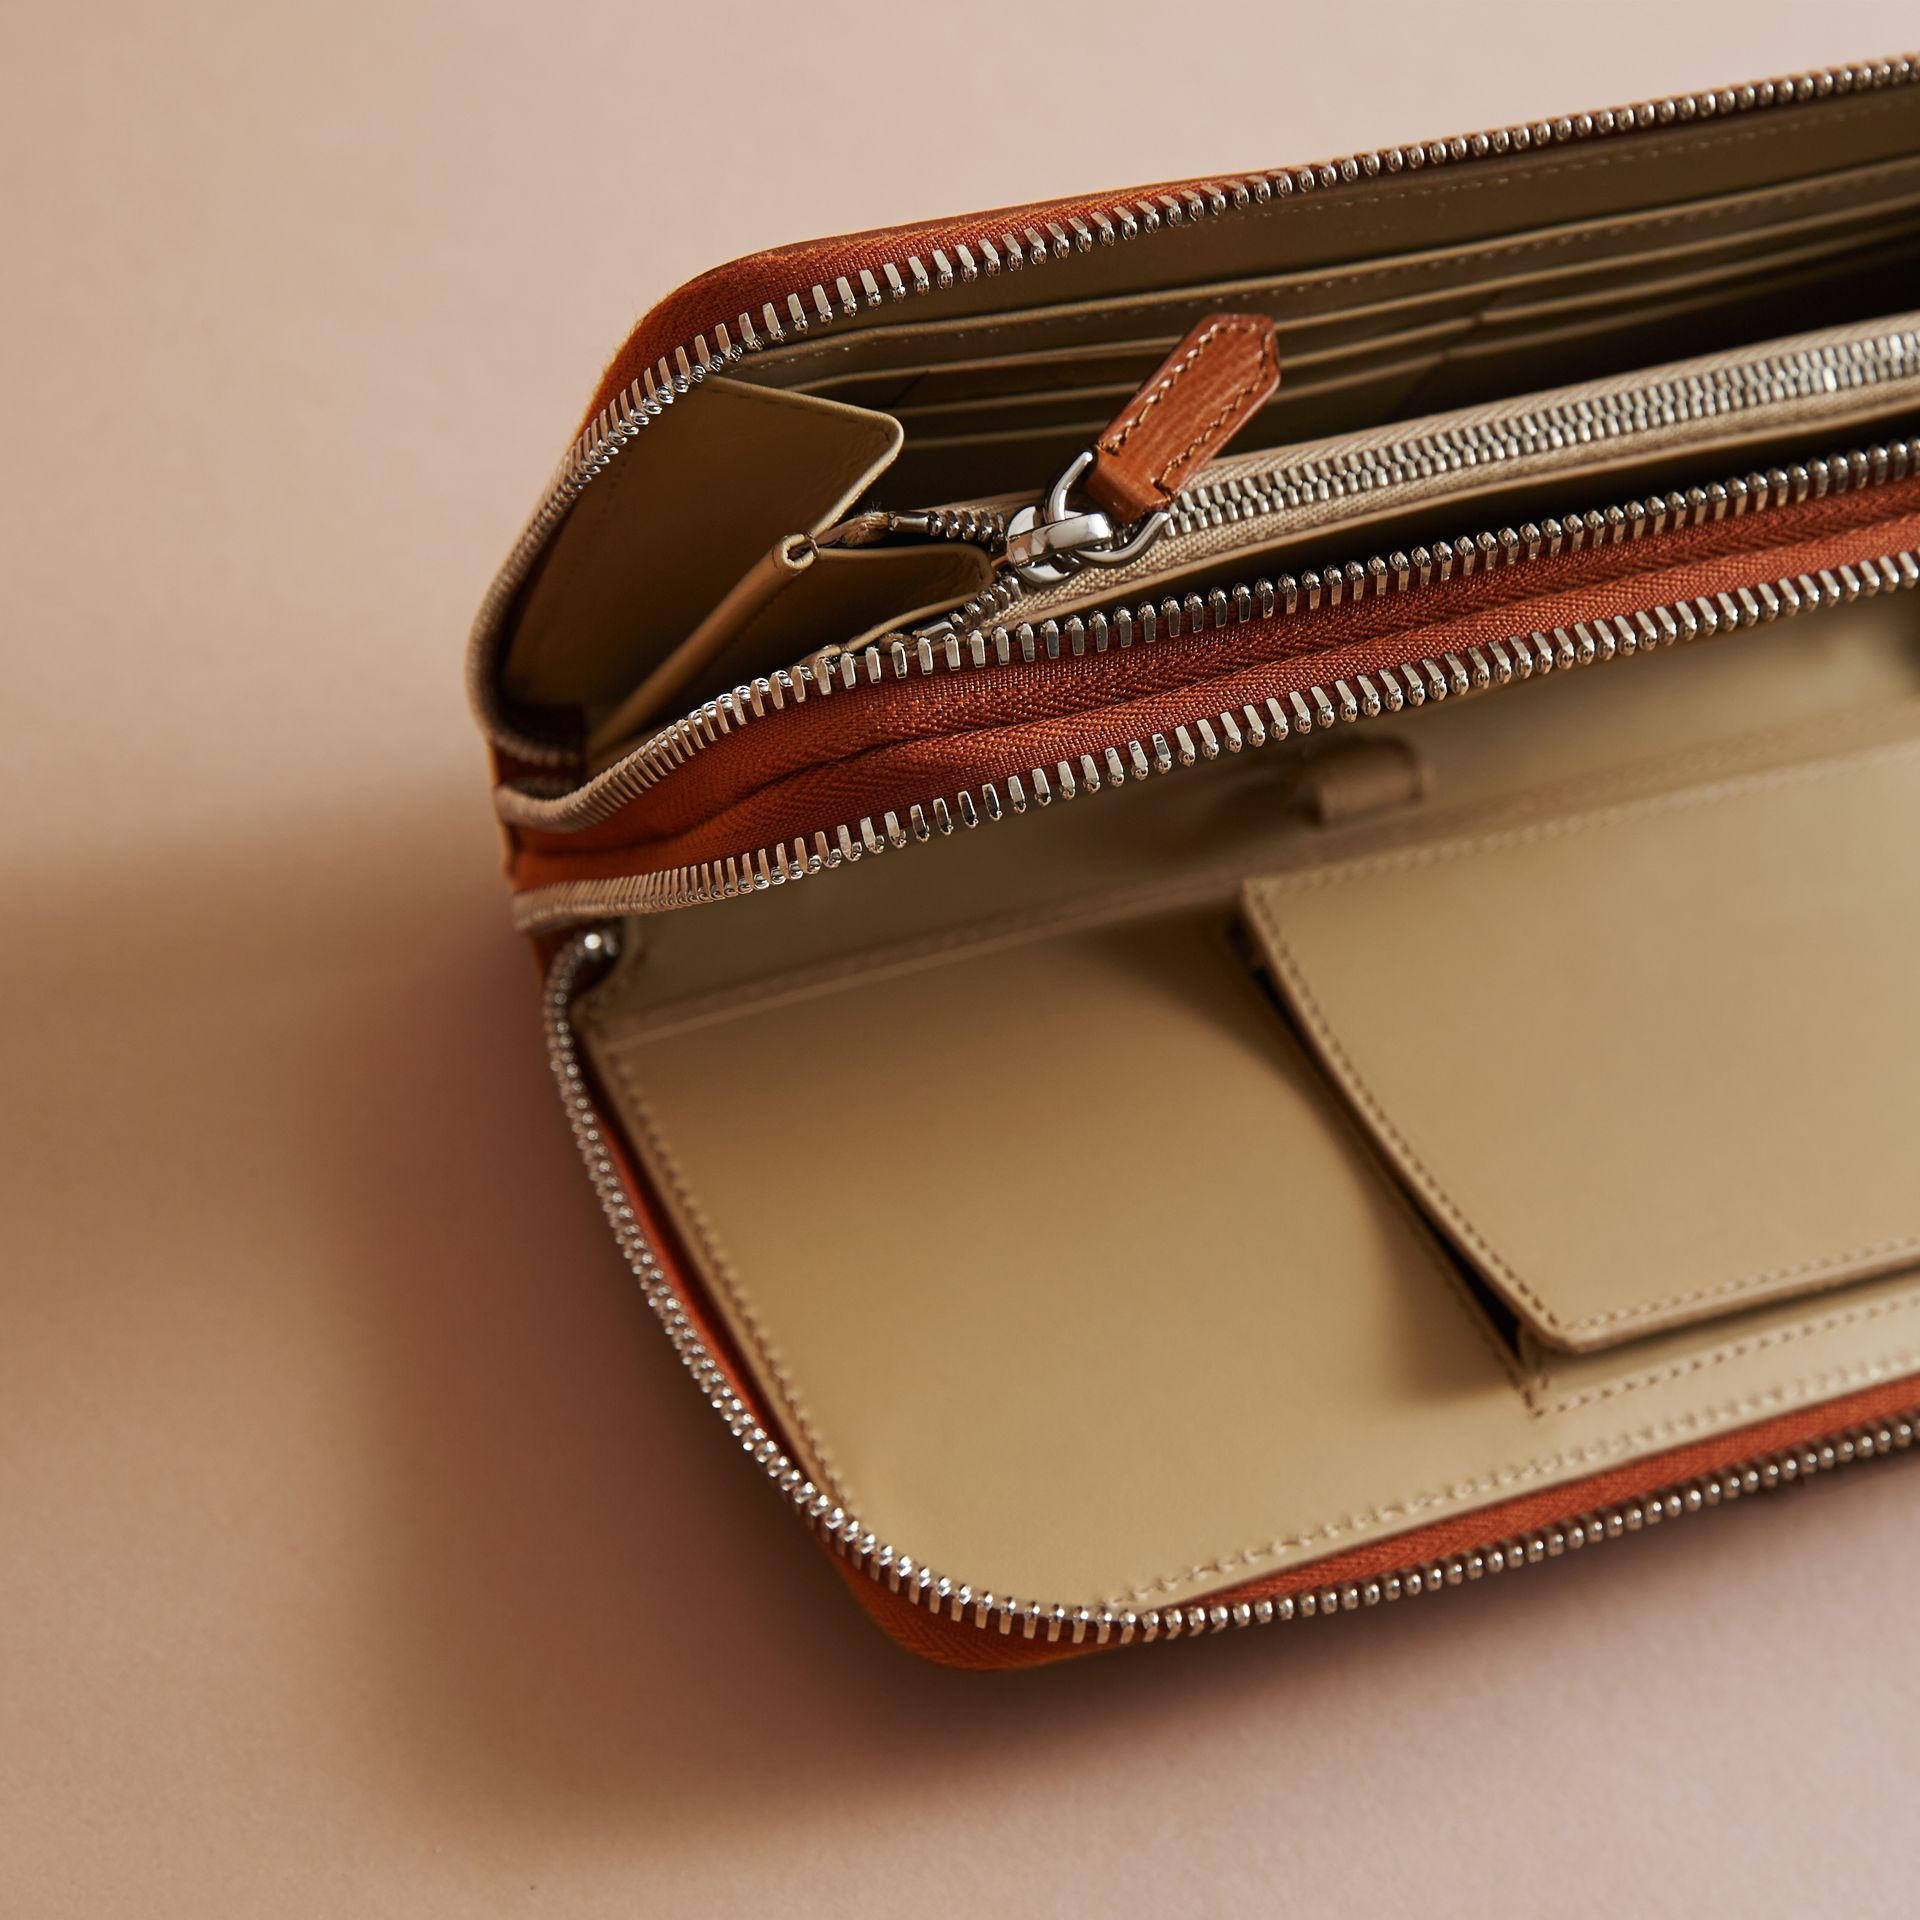 London Leather Travel Wallet in Tan - Men | Burberry - gallery image 5